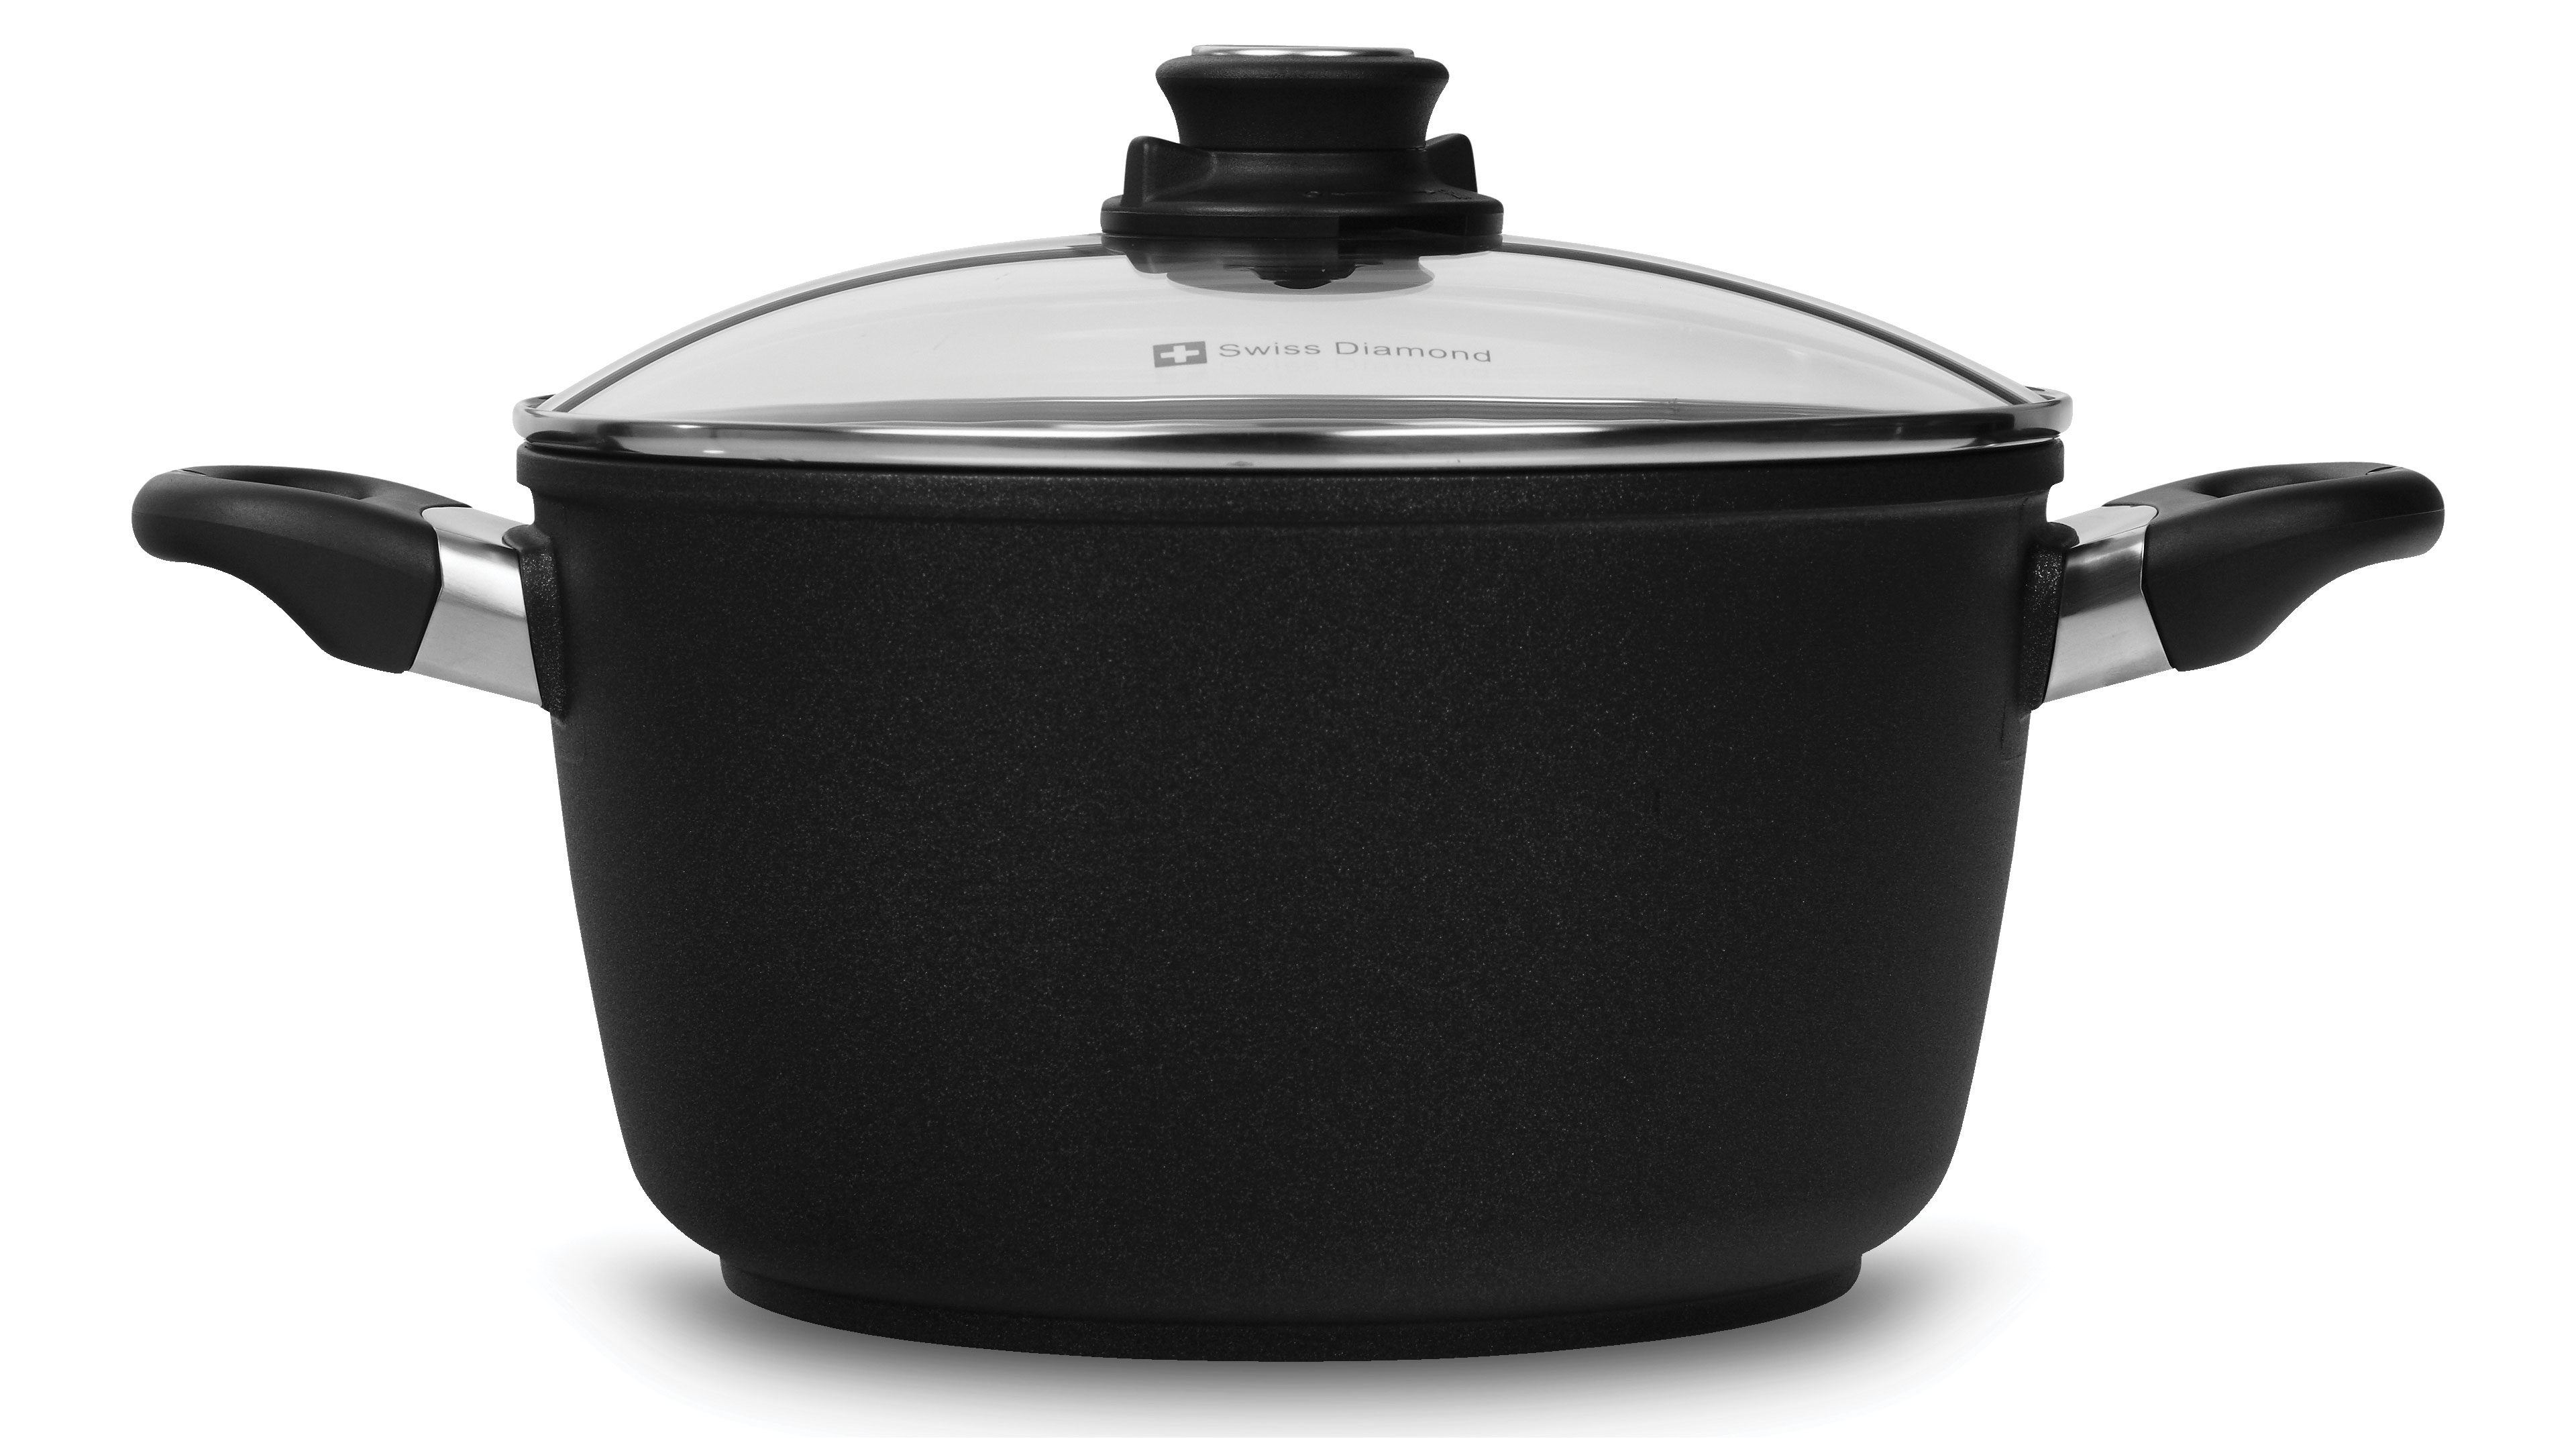 Swiss Diamond Xd Nonstick Soup Pot With Lid 5 5 Quart